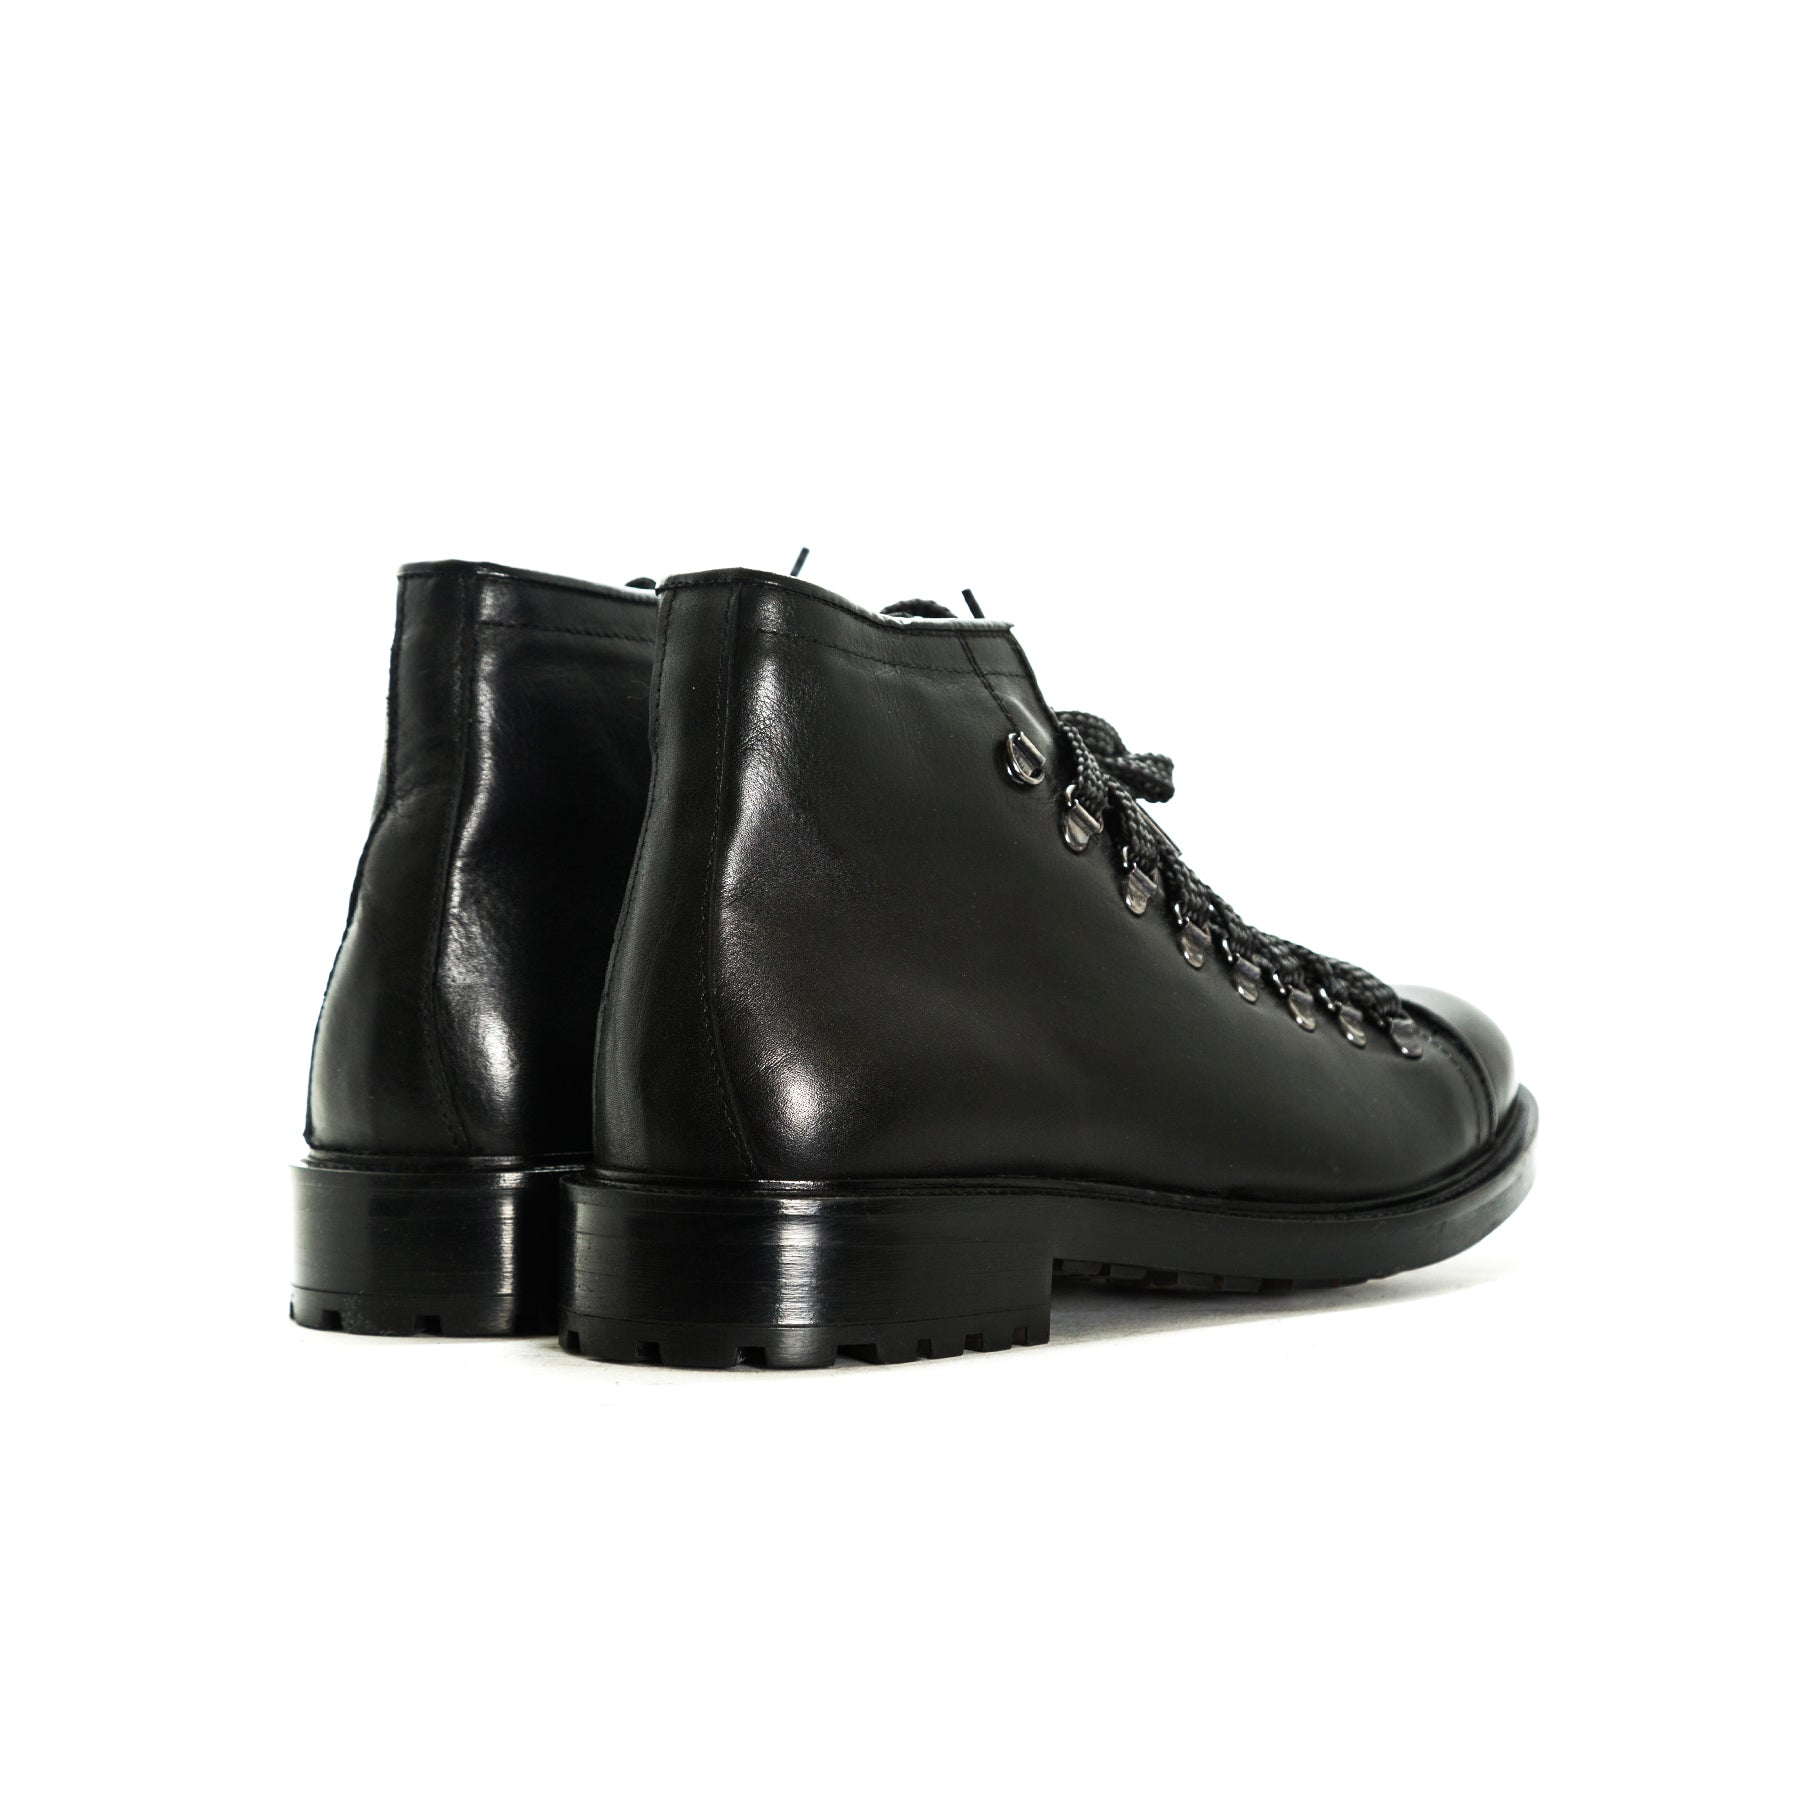 Gaby Black Leather Shoes